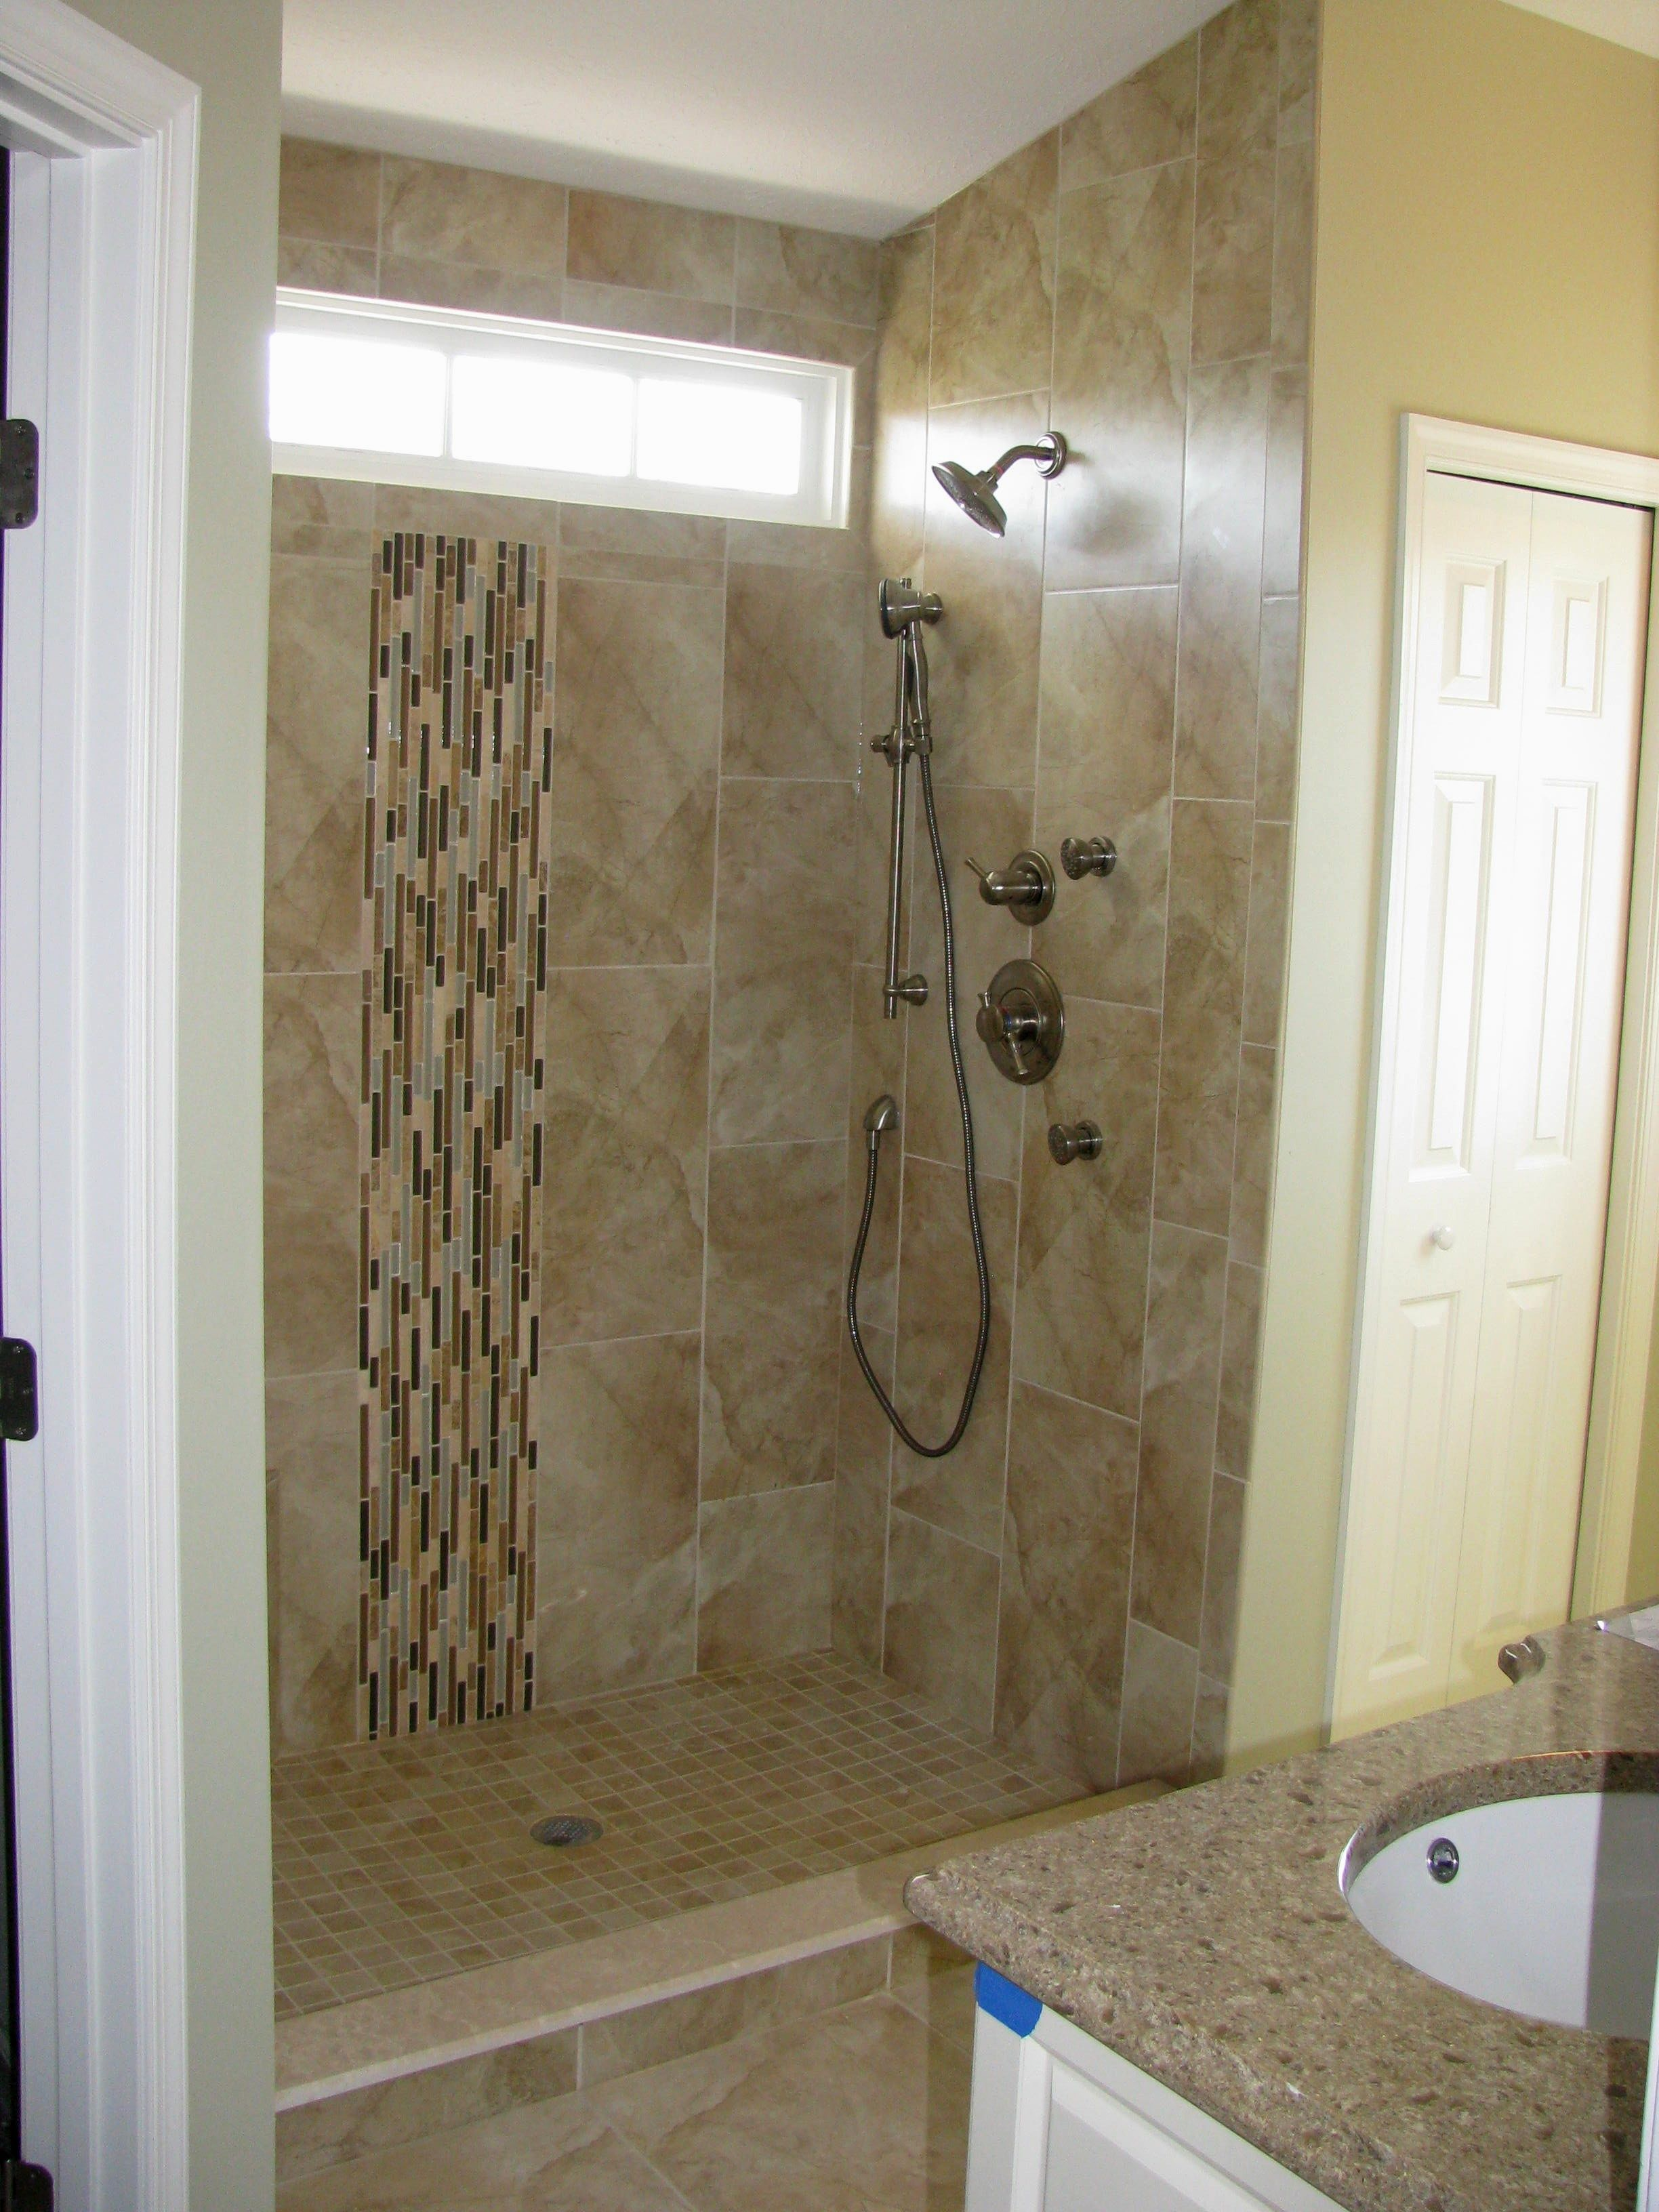 new tile walls in bathroom layout-Inspirational Tile Walls In Bathroom Model